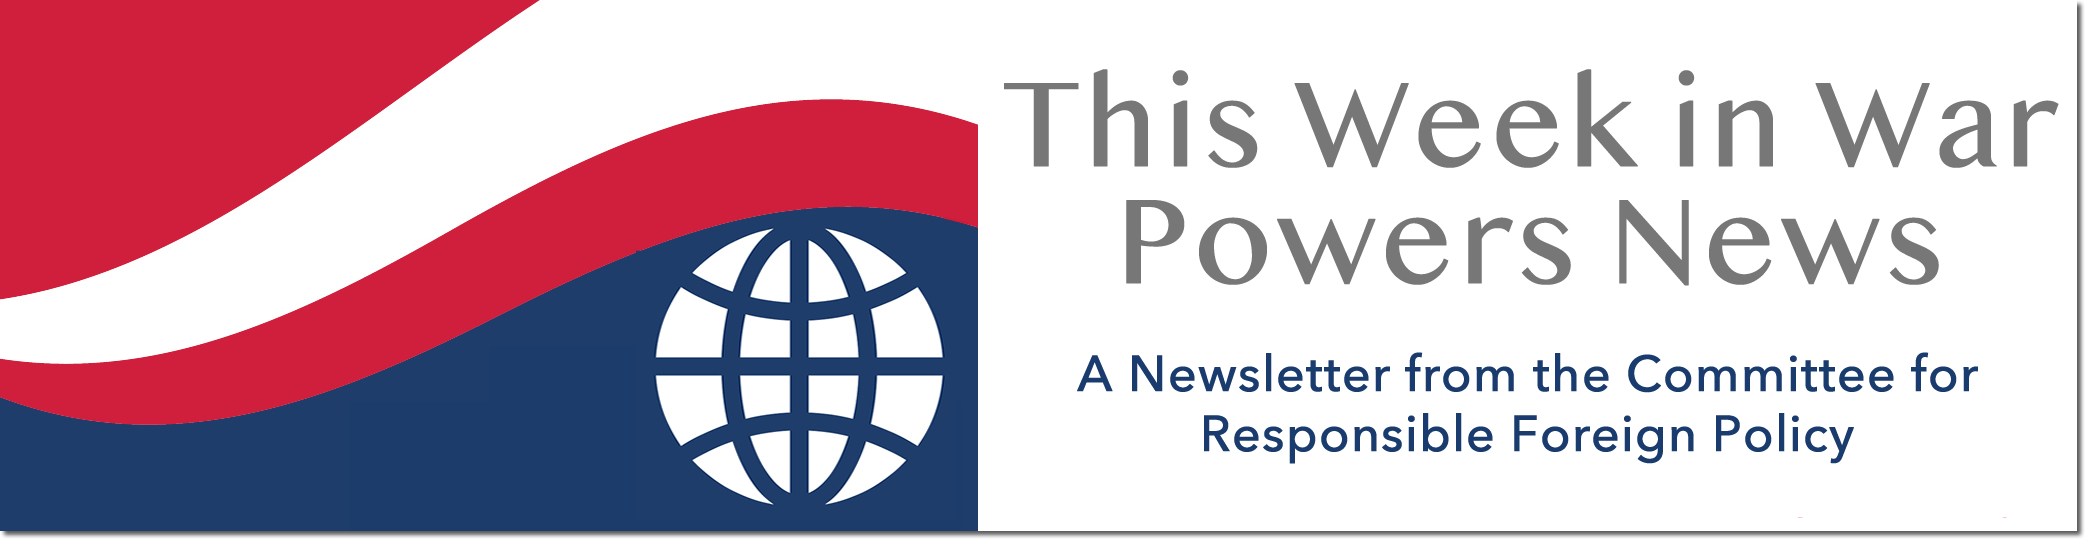 Logo for This Week in War Powers News, a weekly newsletter provided by the Committee for Responsible Foreign Policy.